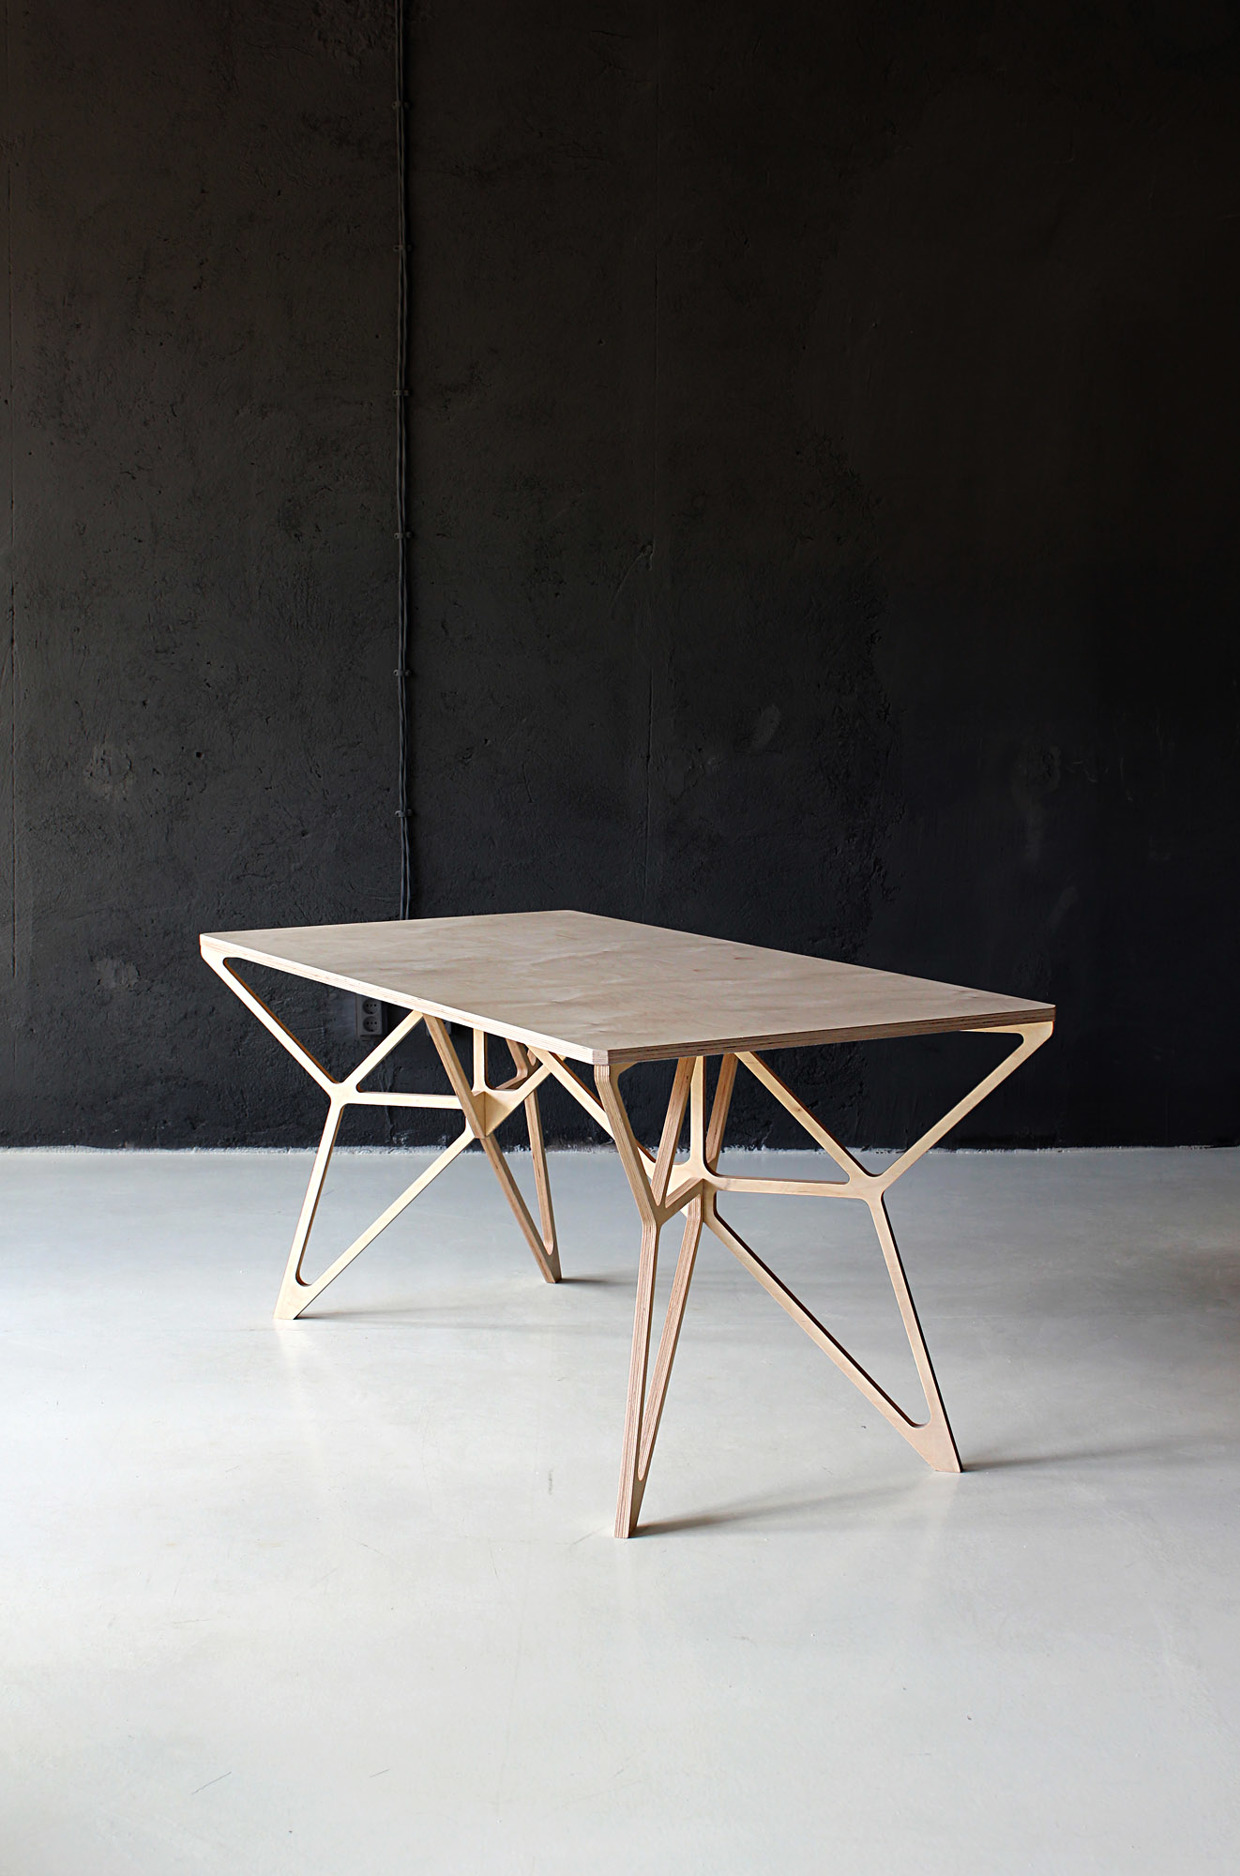 Furniture_P01_Plywood-dontDIY-8